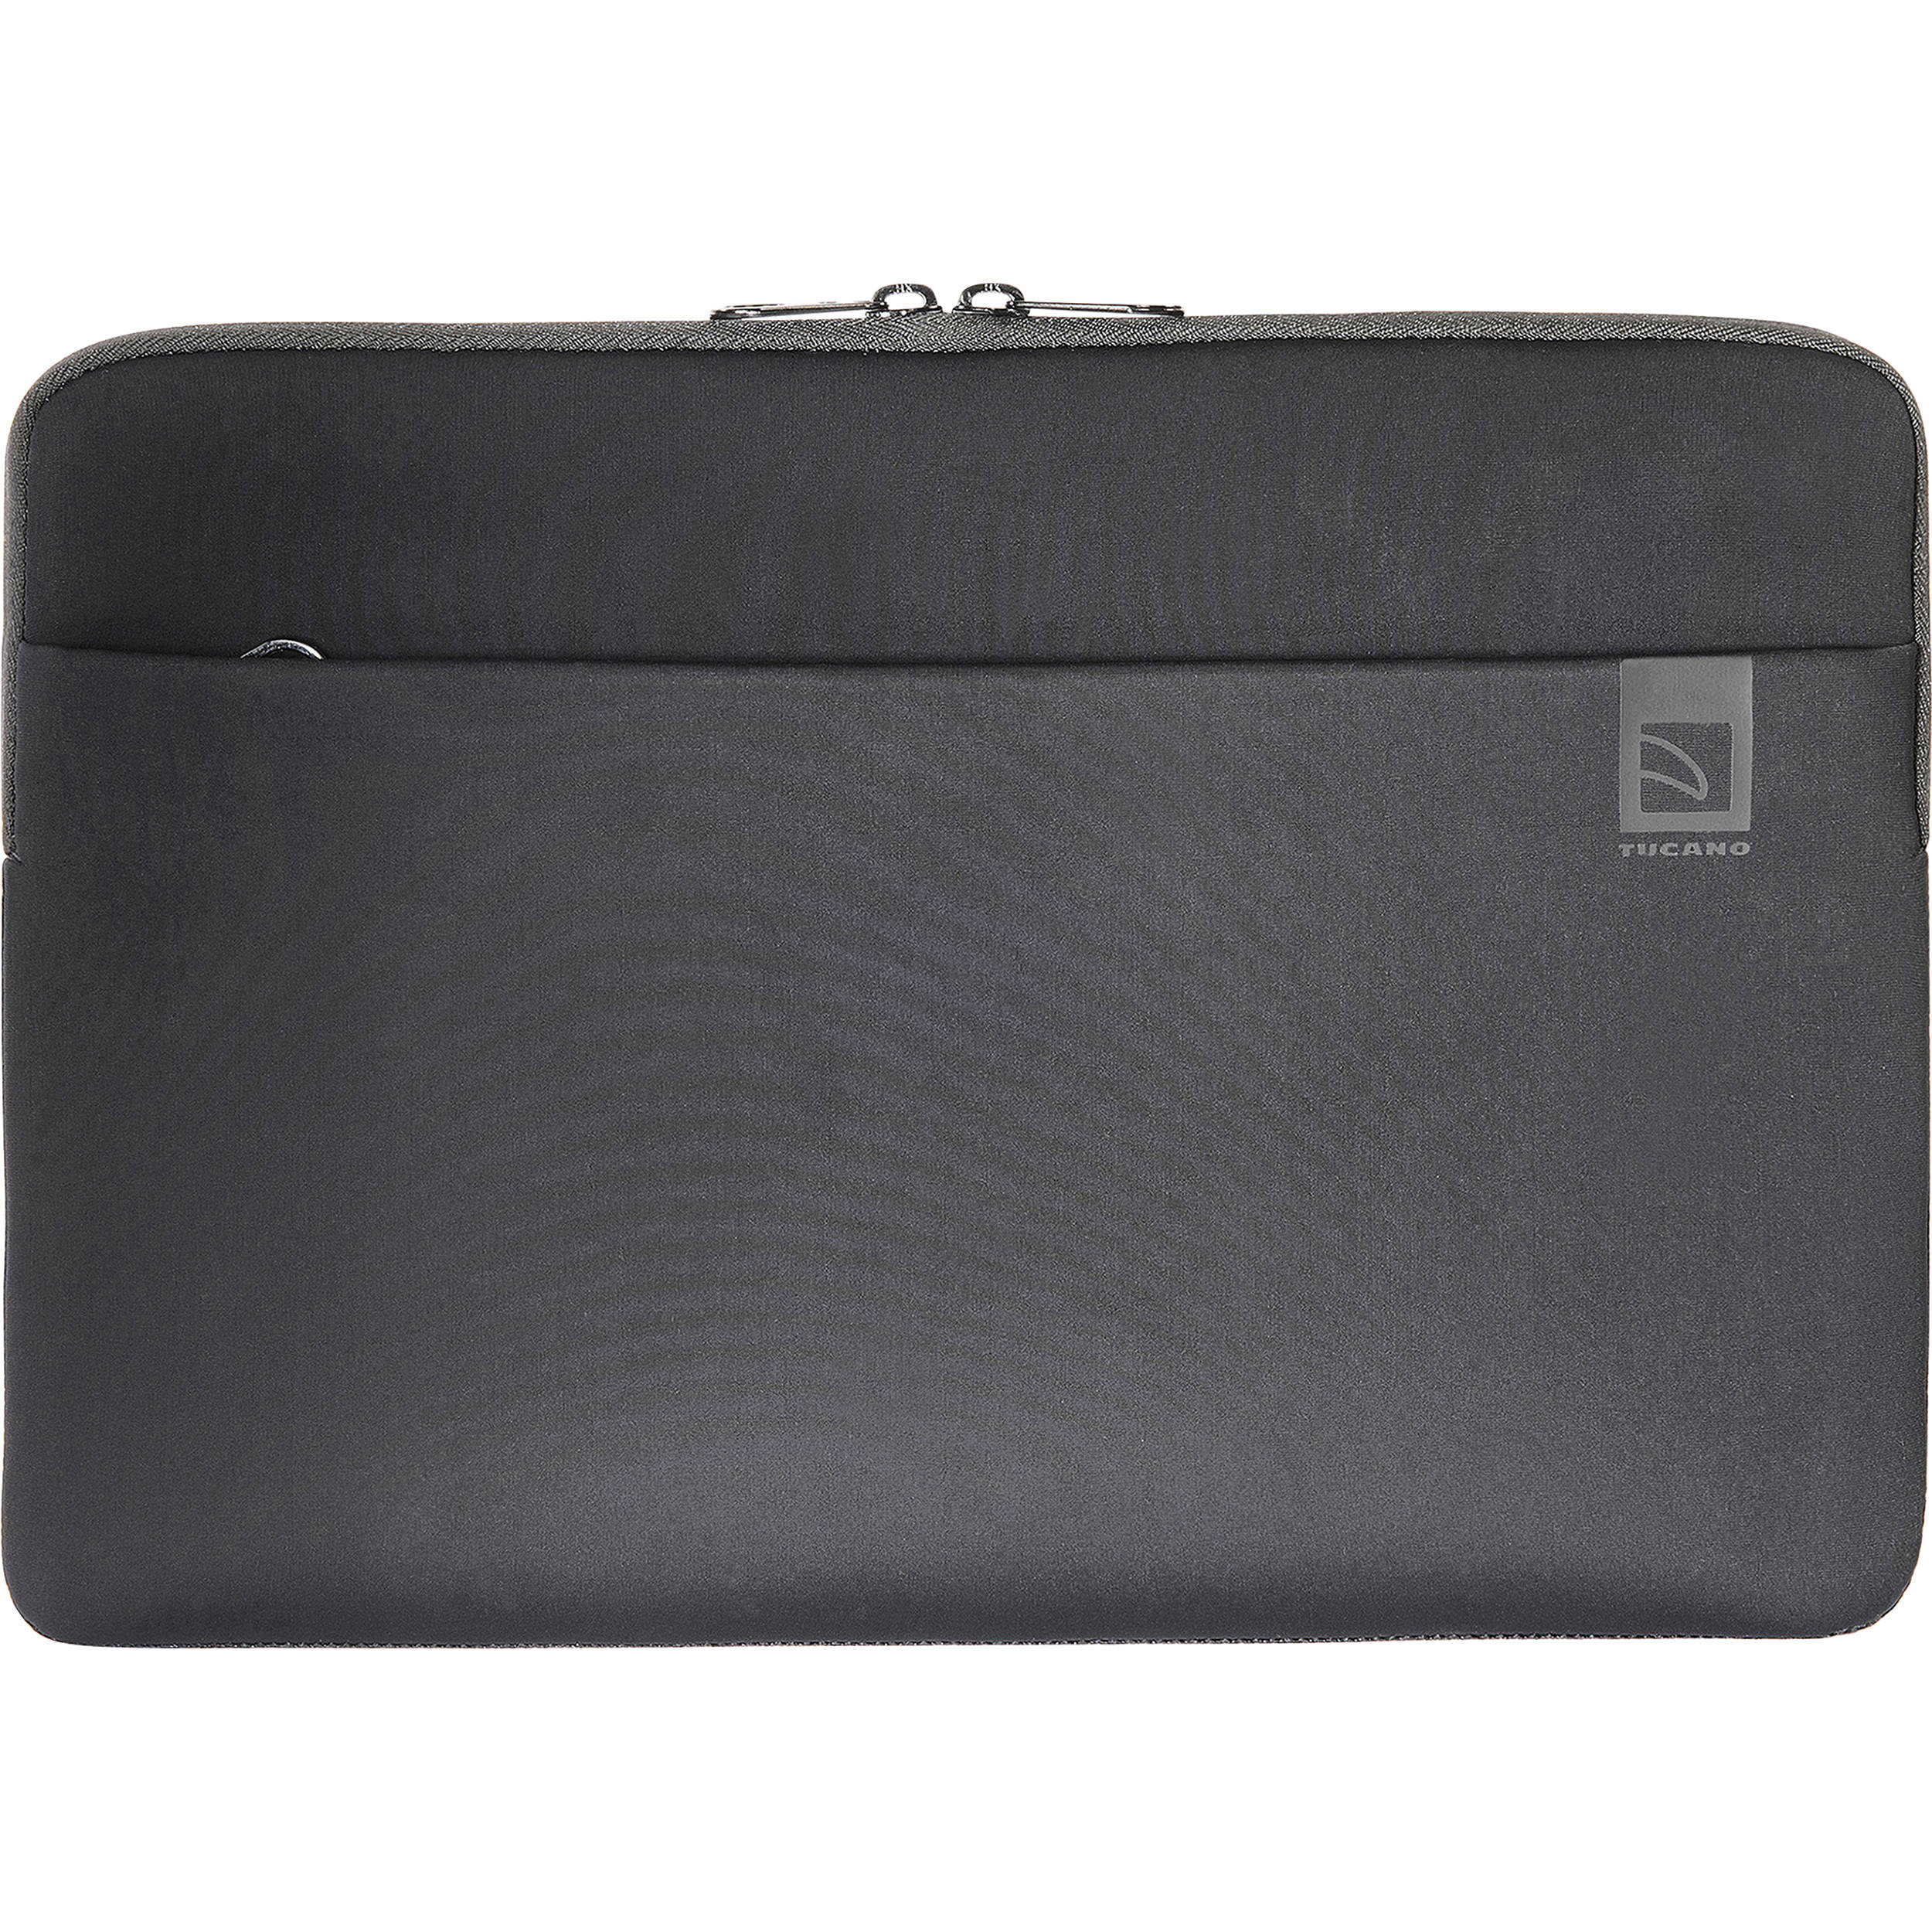 Tucano Top Neoprene Sleeve For Macbook Pro 13 Bftmb13 Bk B H